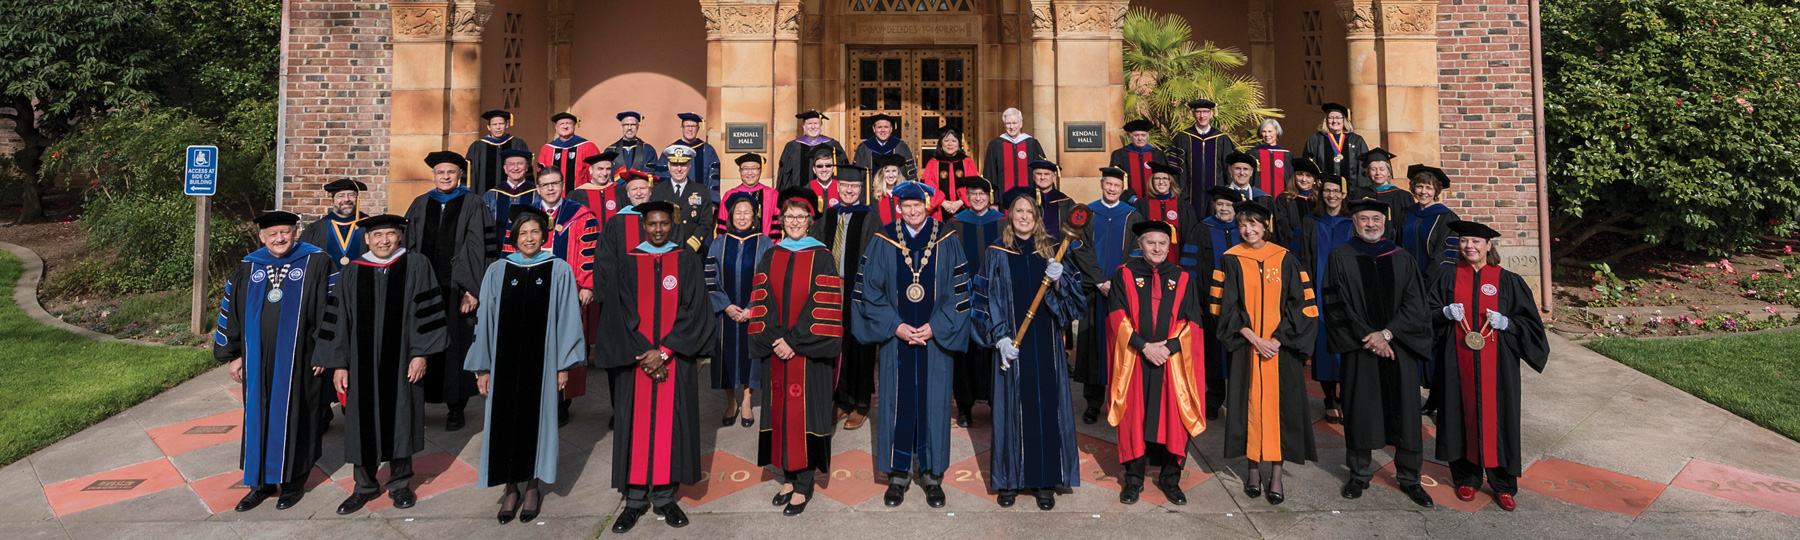 Chancellor White and faculty in academic dress